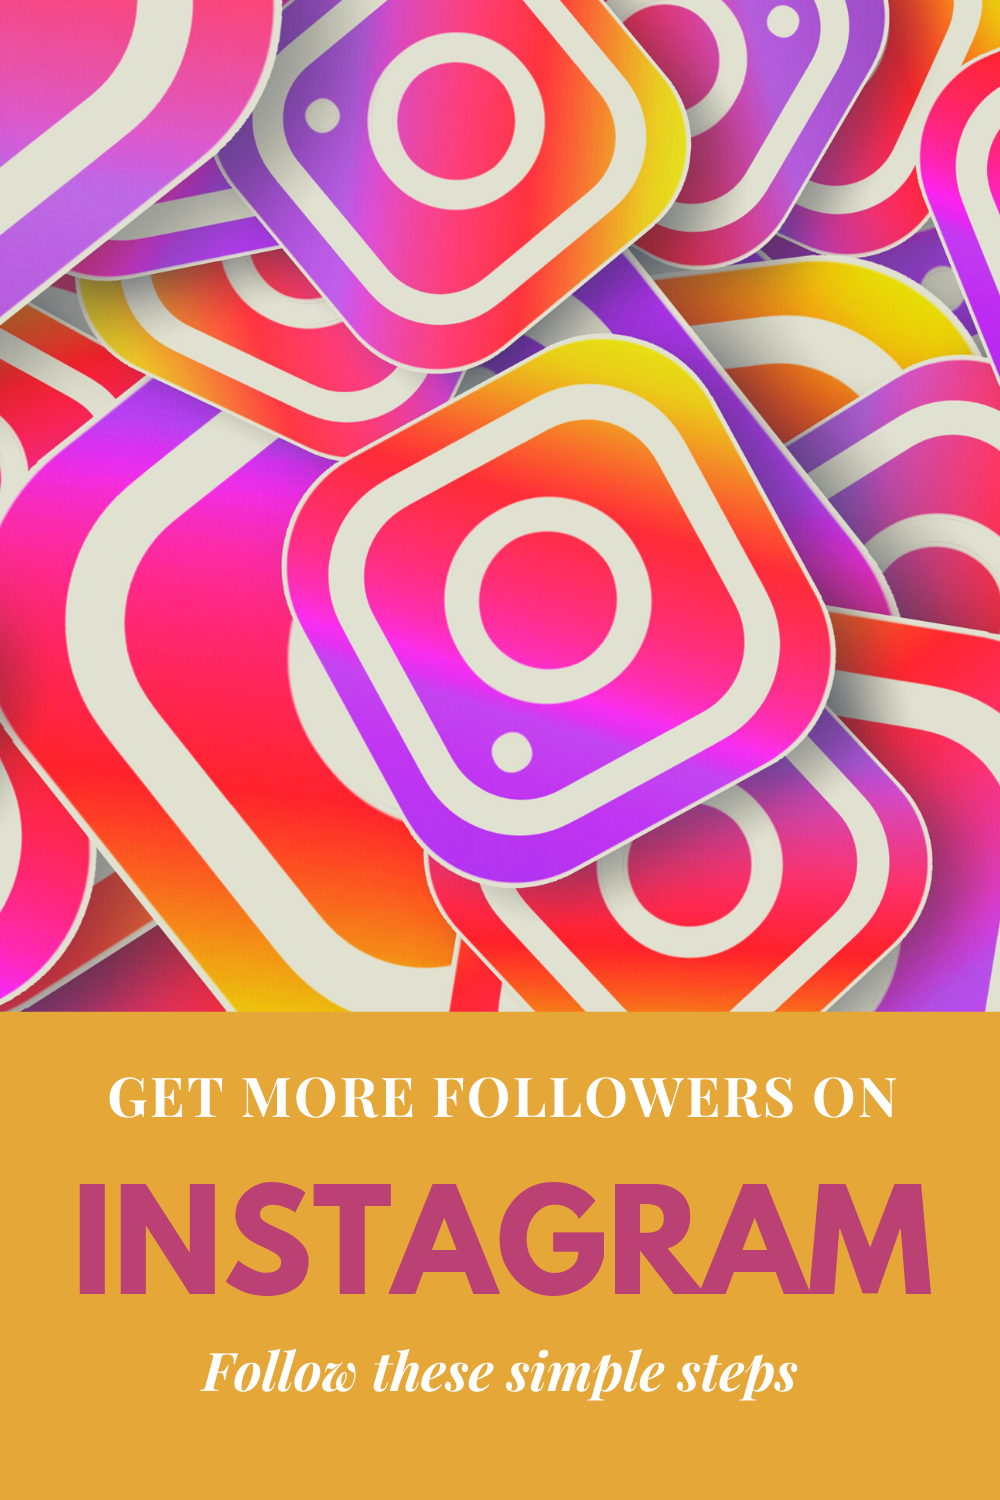 Finding it hard to find followers and engagement on Instagram? Here's a list of tips and tricks to get you to your next 500, 1000, or 10000 followers!